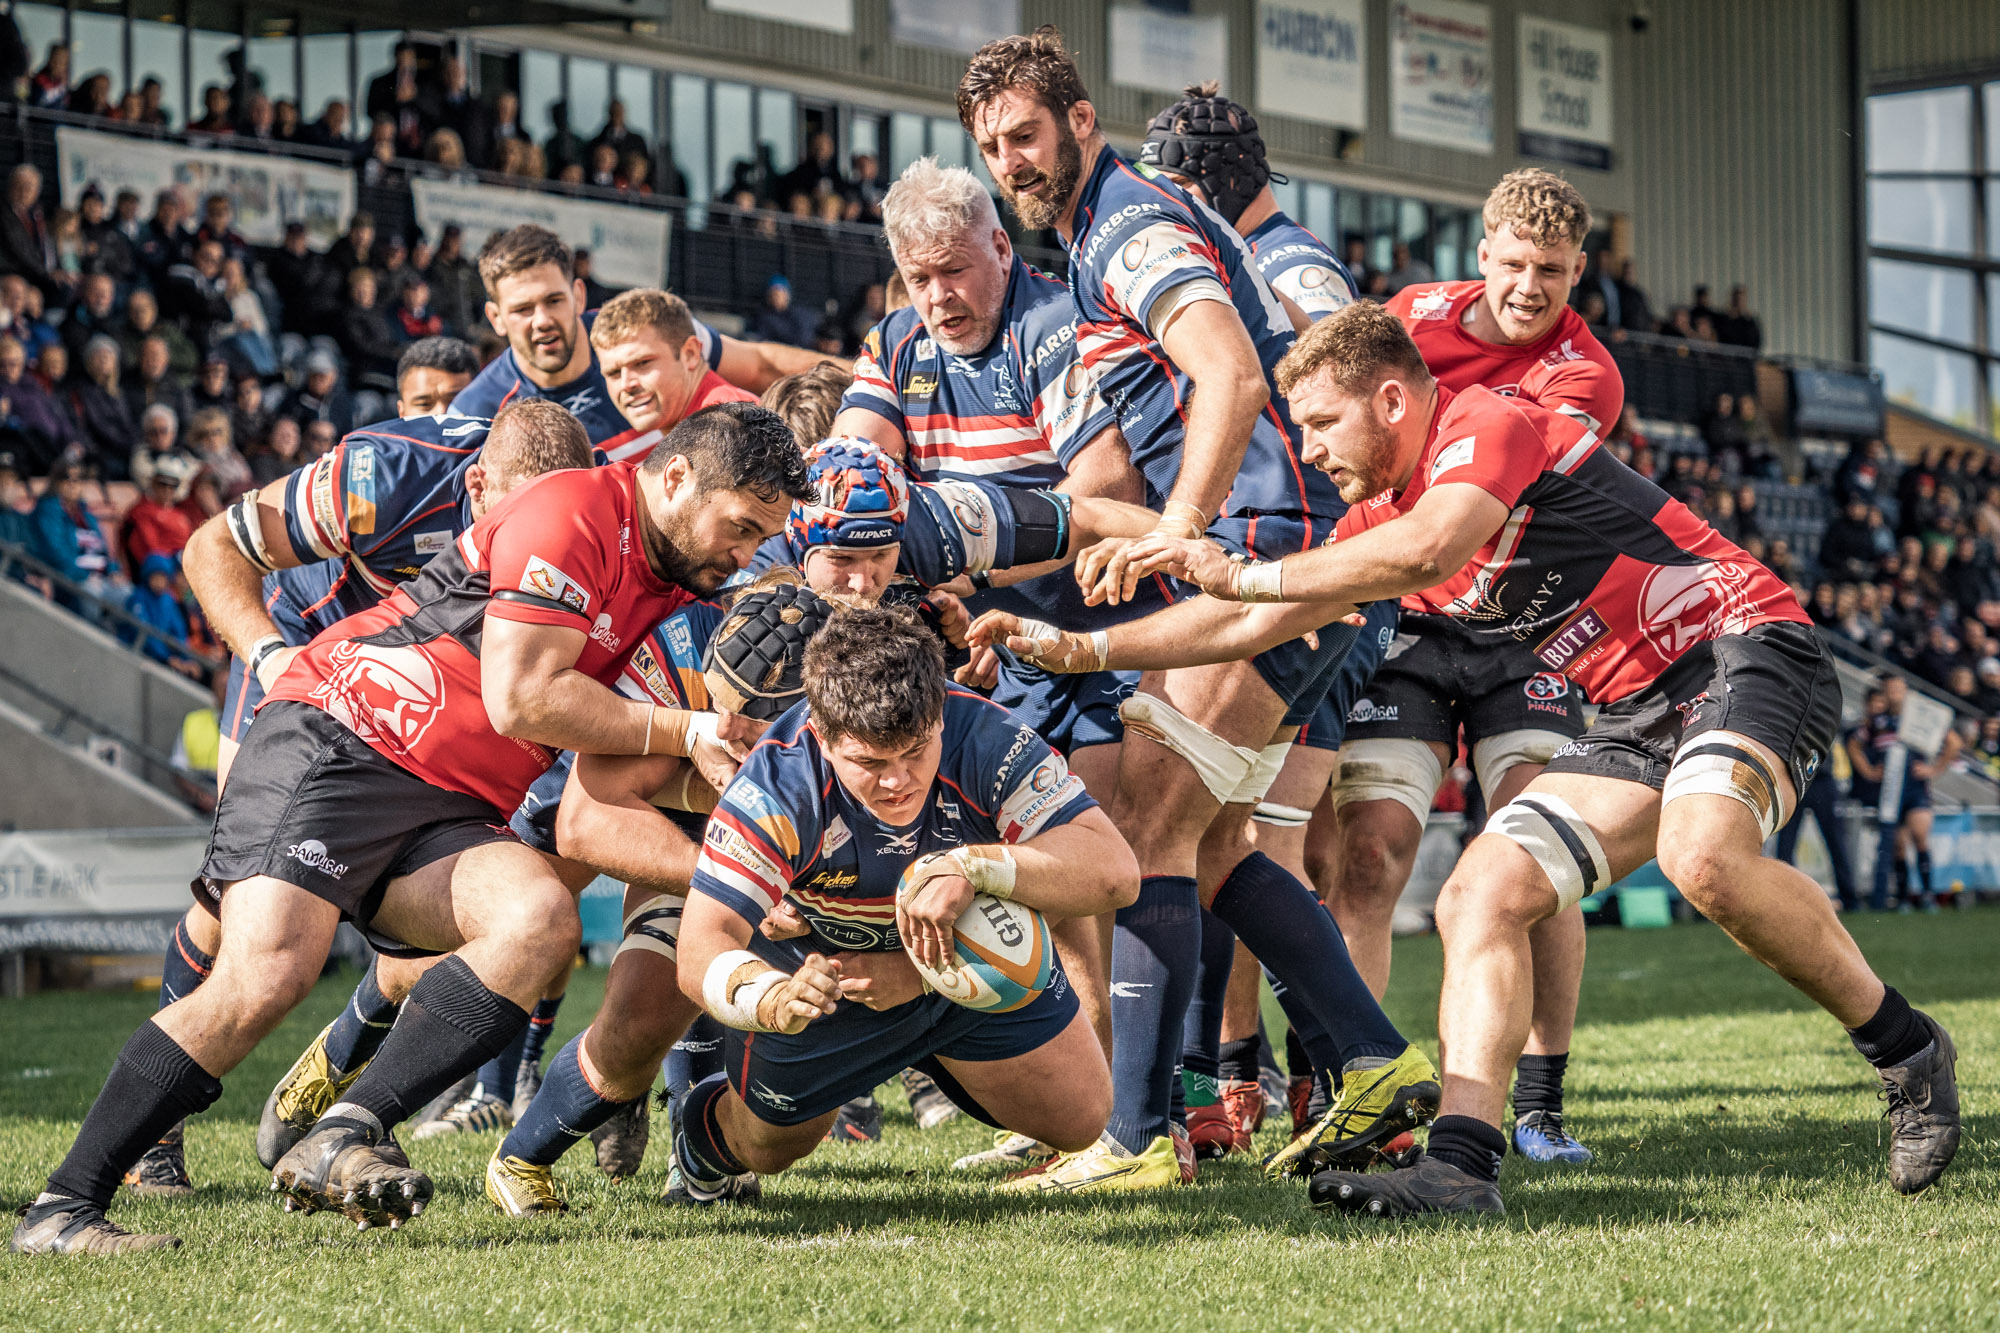 A favourite shot from Doncaster Knights' end of season game with Cornish Pirates. Ben Hunter touches down as others support, resist or watch